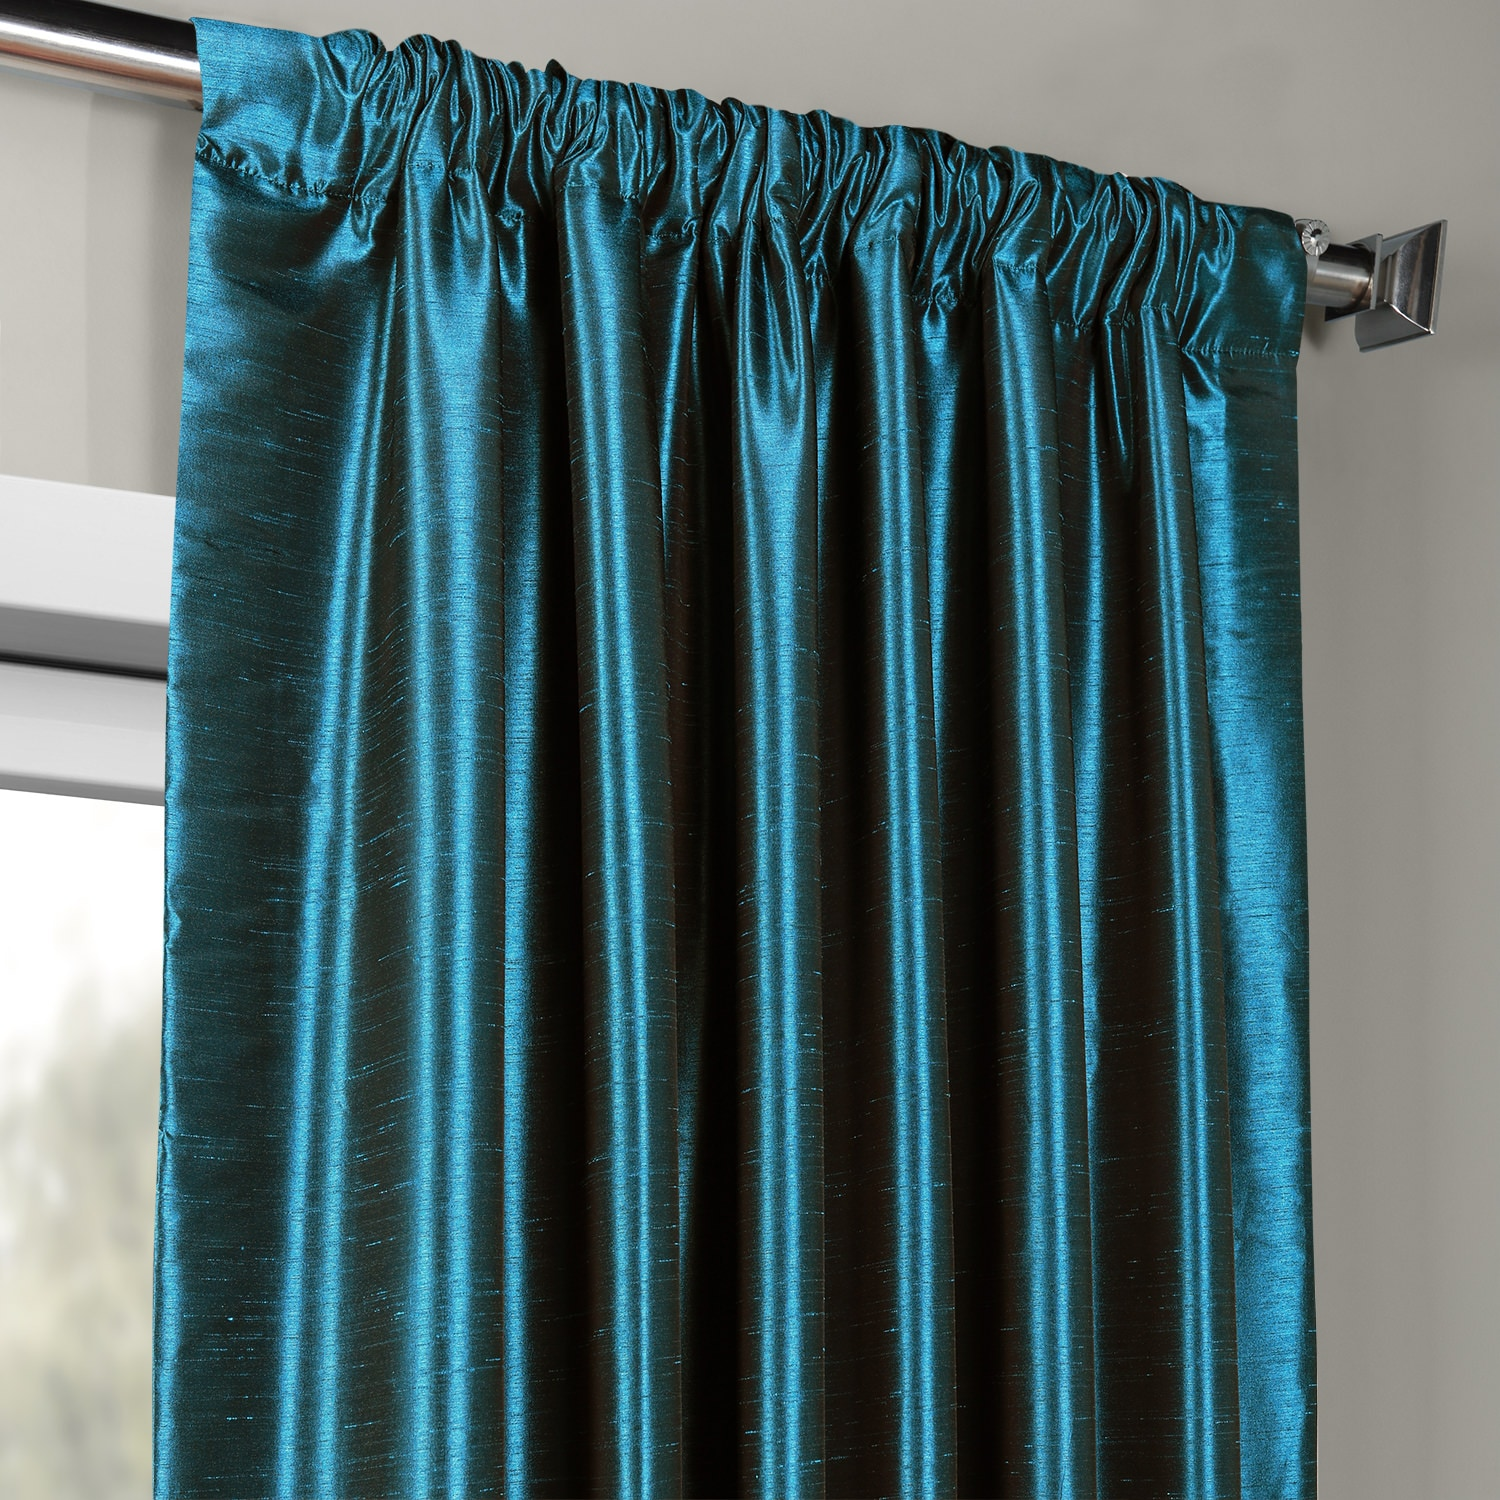 Oceanside Blue Vintage Textured Faux Dupioni Silk Curtain